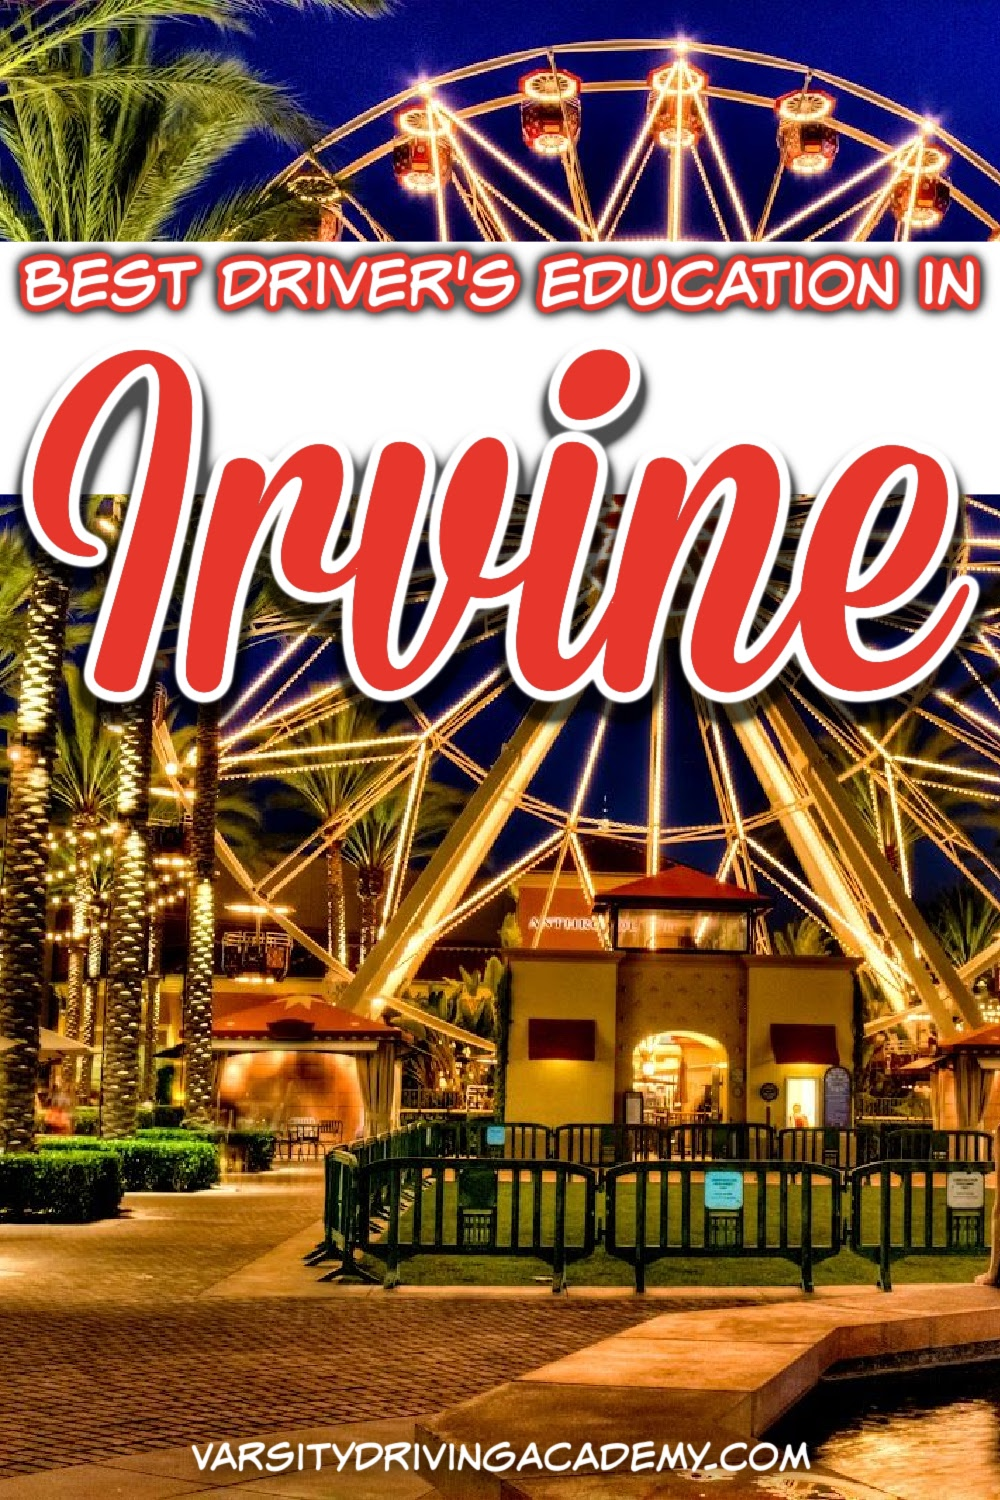 Varsity Driving Academy is the top rated Irvine driving school for over 9 years. Choose only the best for your driver's training from the most trusted Irvine Drivers Ed, Varsity Driving Academy.